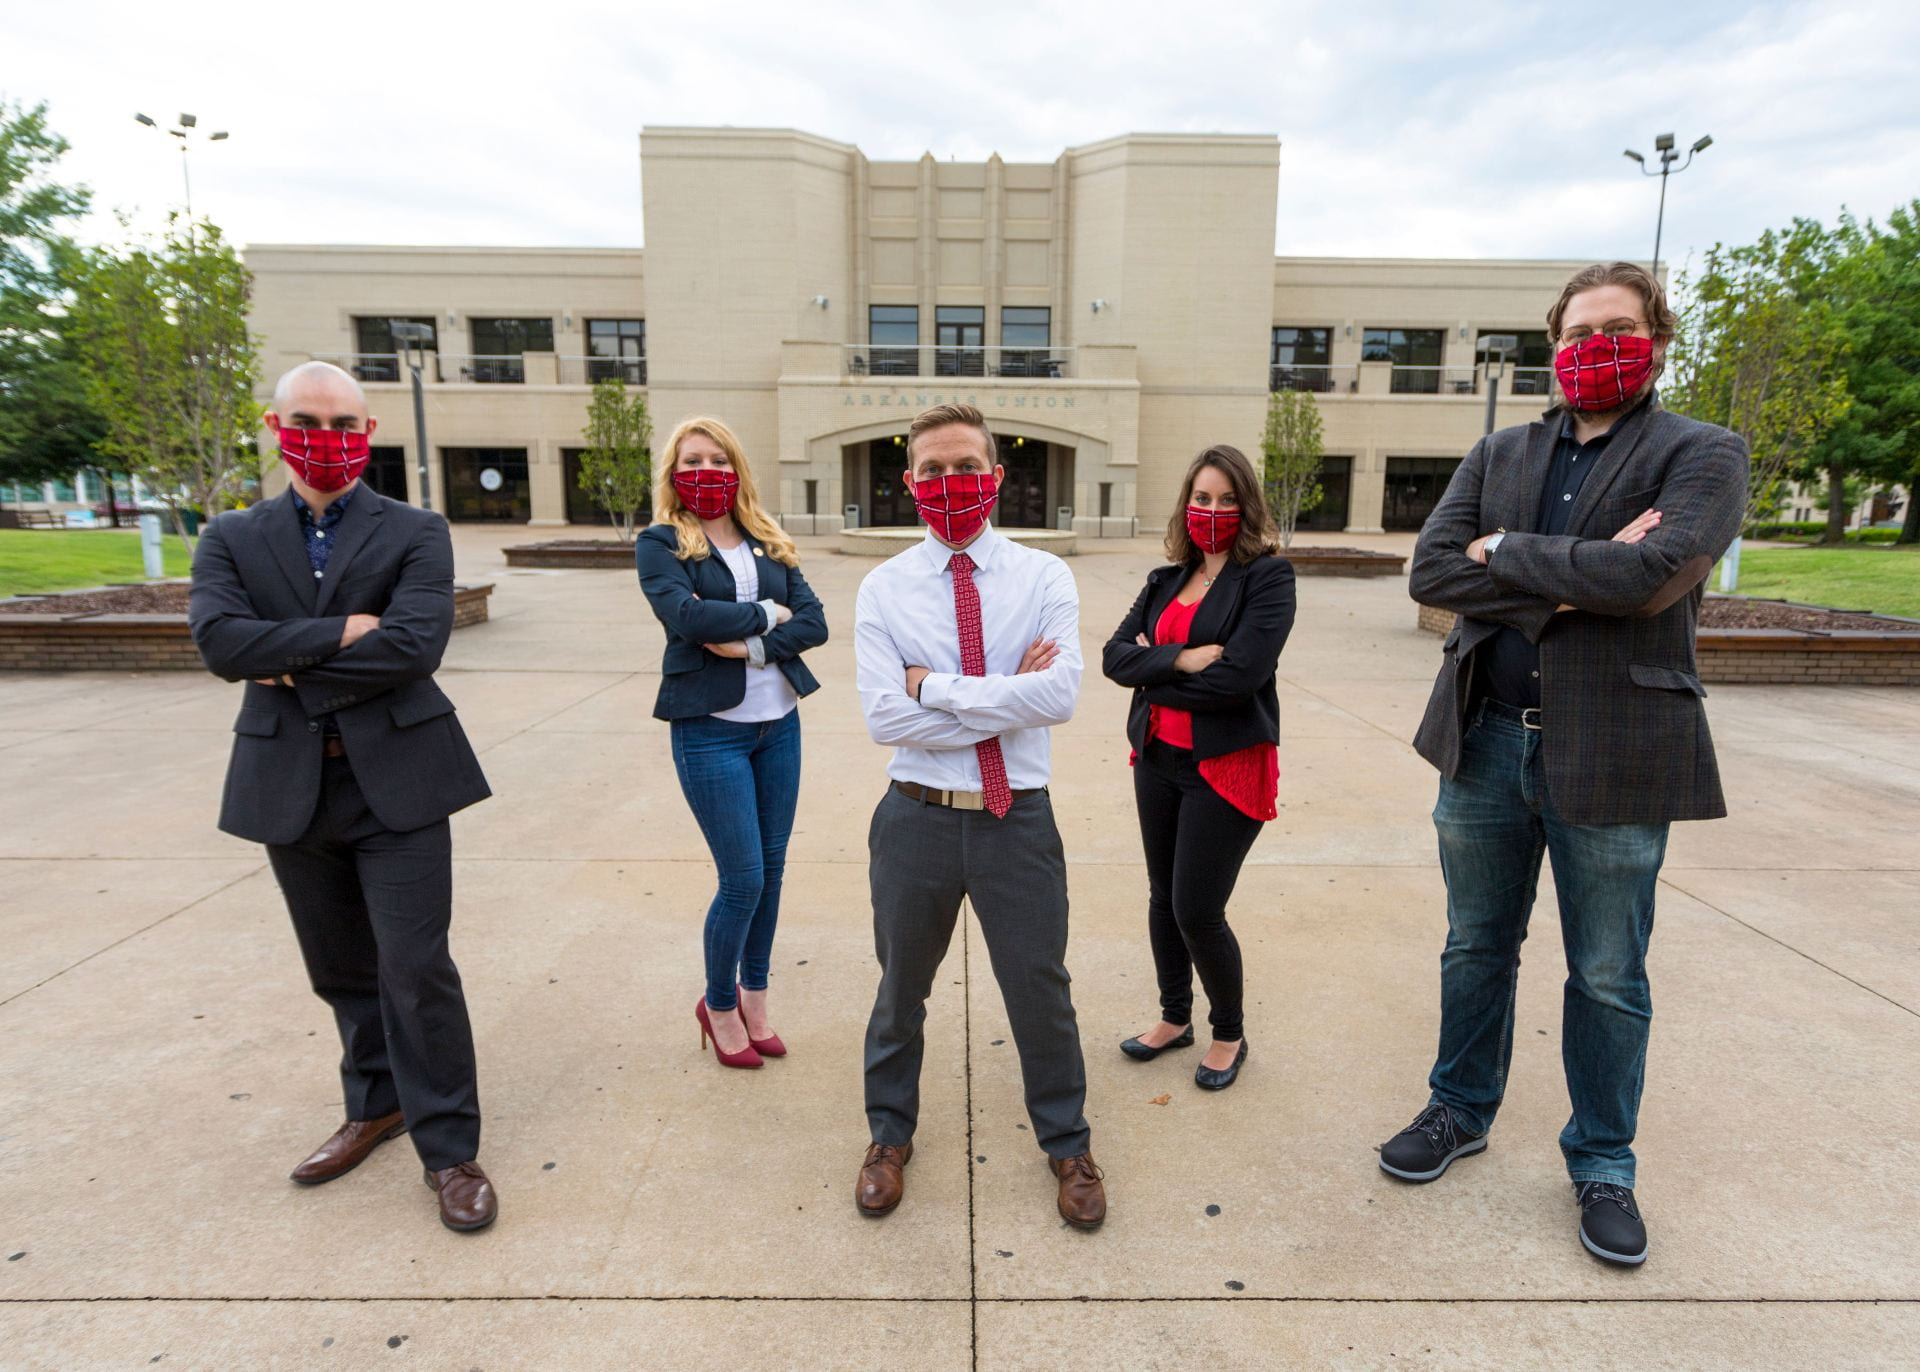 The five members of the GPSC Executive Council (DiLoreto-Hill, Dzurilla, Holdier, Bonney, and Slank), all wearing PPE face masks w/ the Razorback logo, stand distanced with arms crossed in front of the Arkansas Student Union.